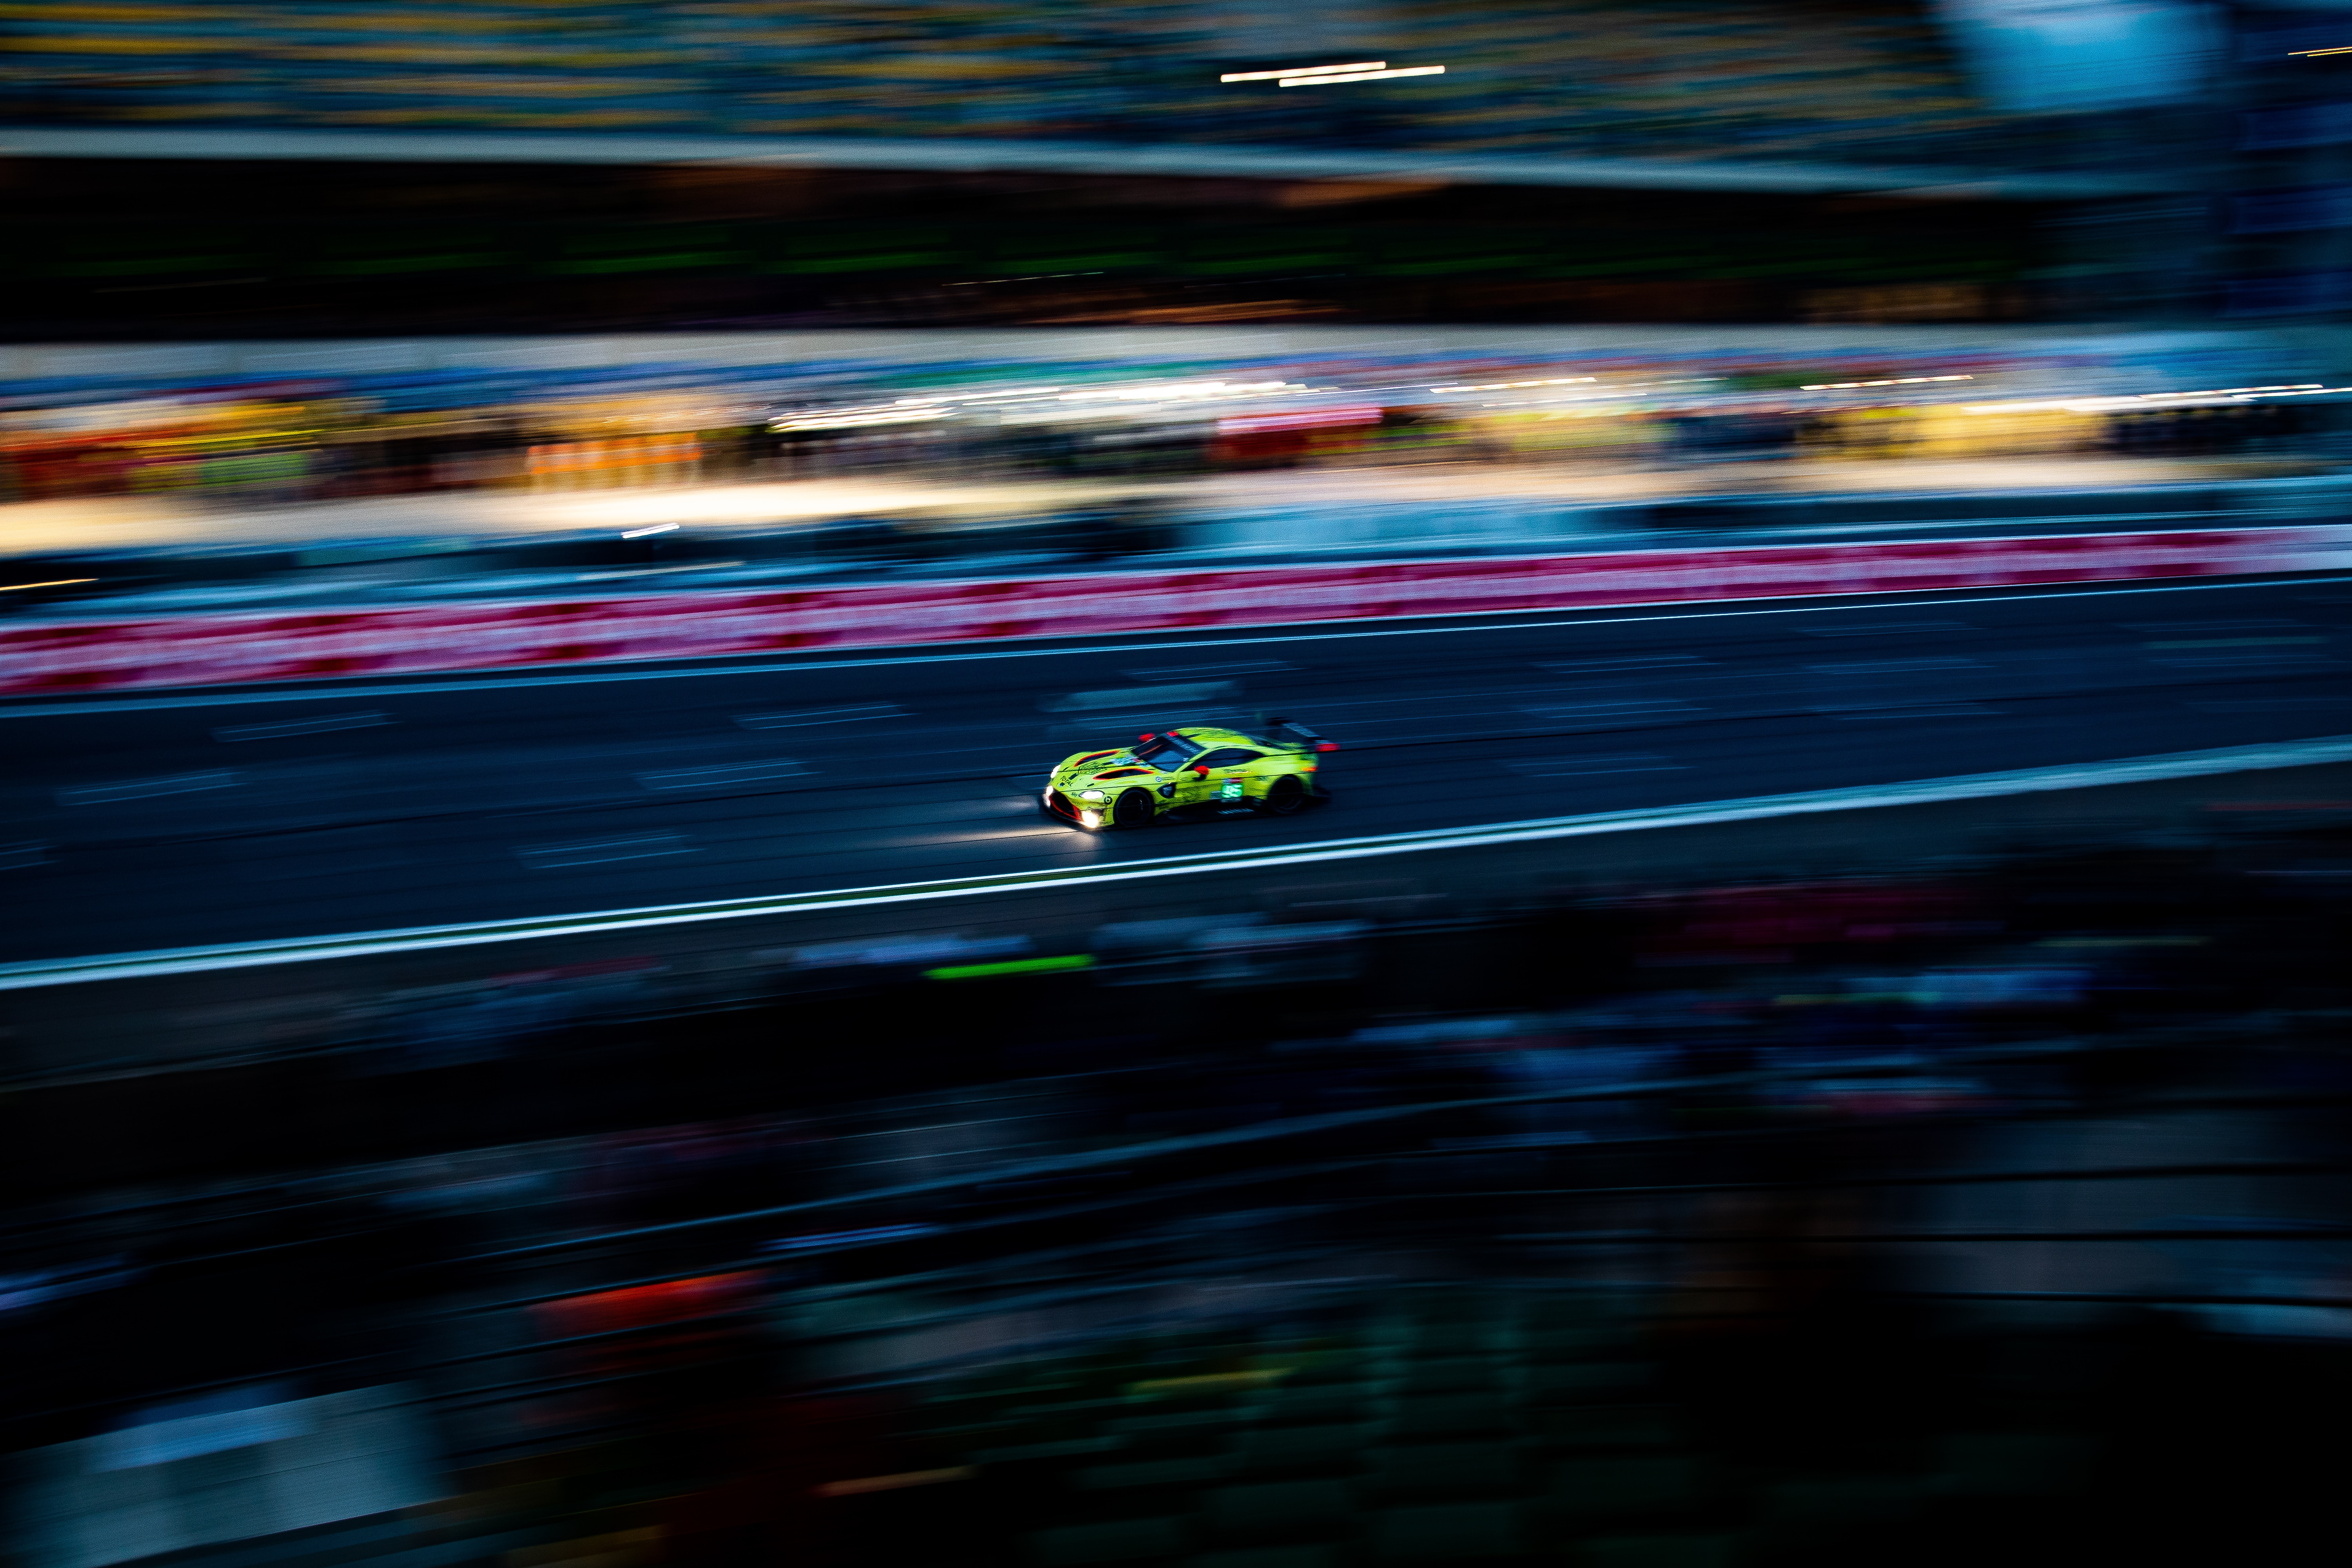 105427 Screensavers and Wallpapers Races for phone. Download Sports, Races, Cars, Car, Blur, Smooth, Machine, Sports Car, Speed pictures for free